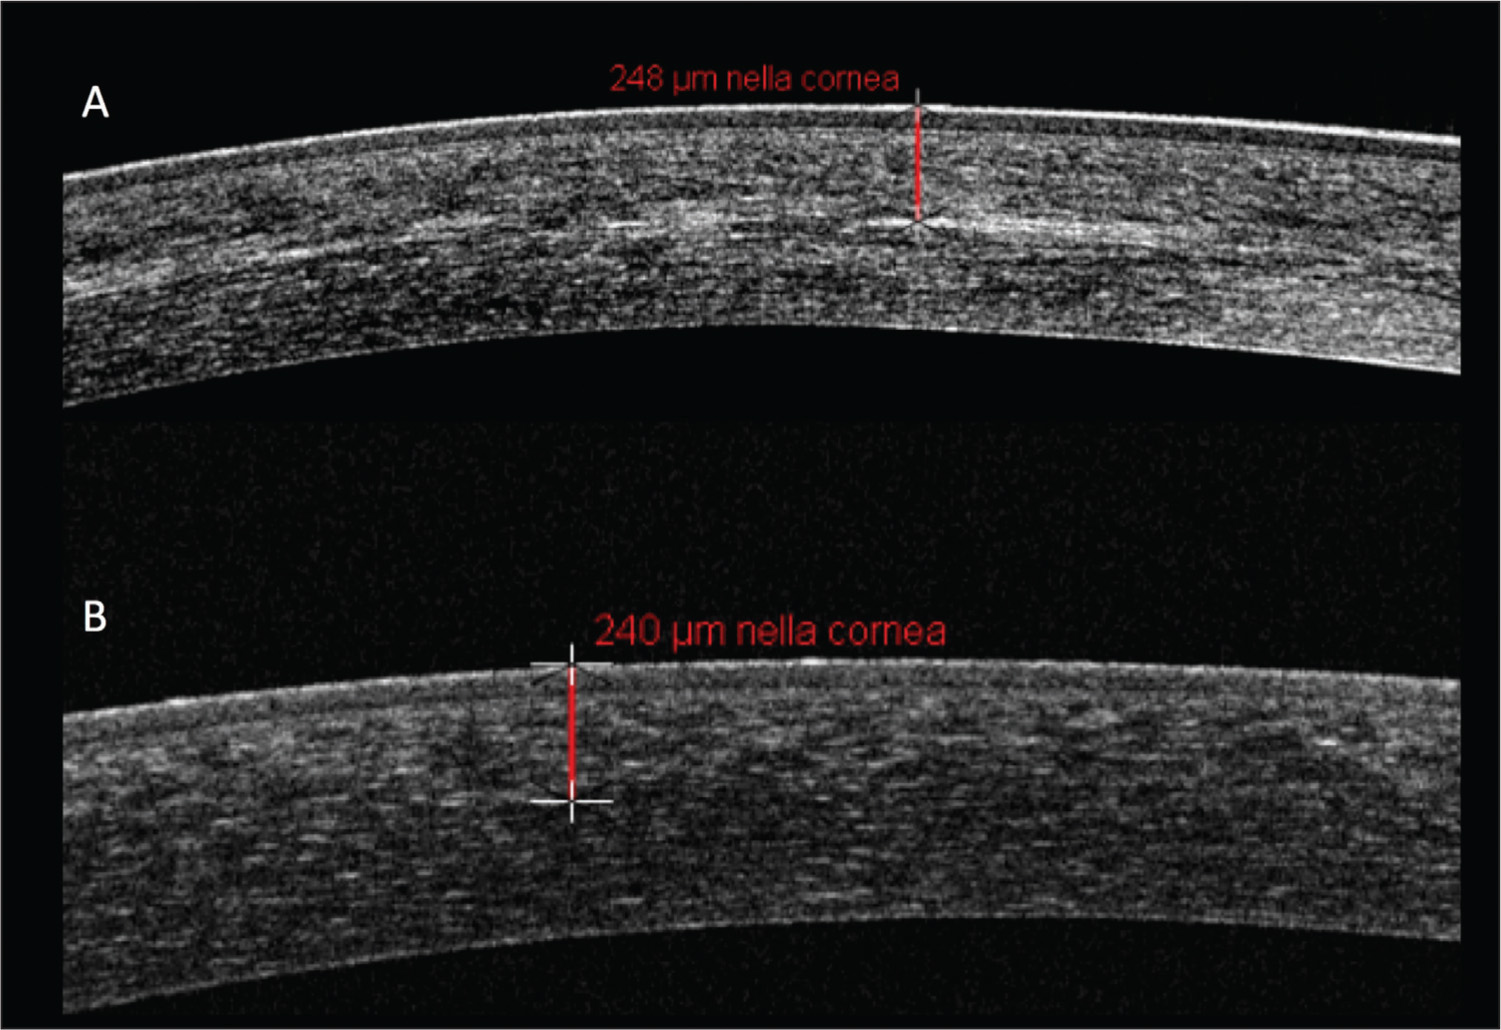 Difference in anterior segment optical coherence tomography in a patient who underwent (A) standard epithelium-off cross-linking (S-CXL) in one eye and (B) transepithelial iontophoresis cross-linking (I-CXL) in the other. In S-CXL, an increase of reflectance with a white line (demarcation line) is normally visible. In I-CXL, it is possible to detect a similar increase of reflectance; however, no white line is visible.